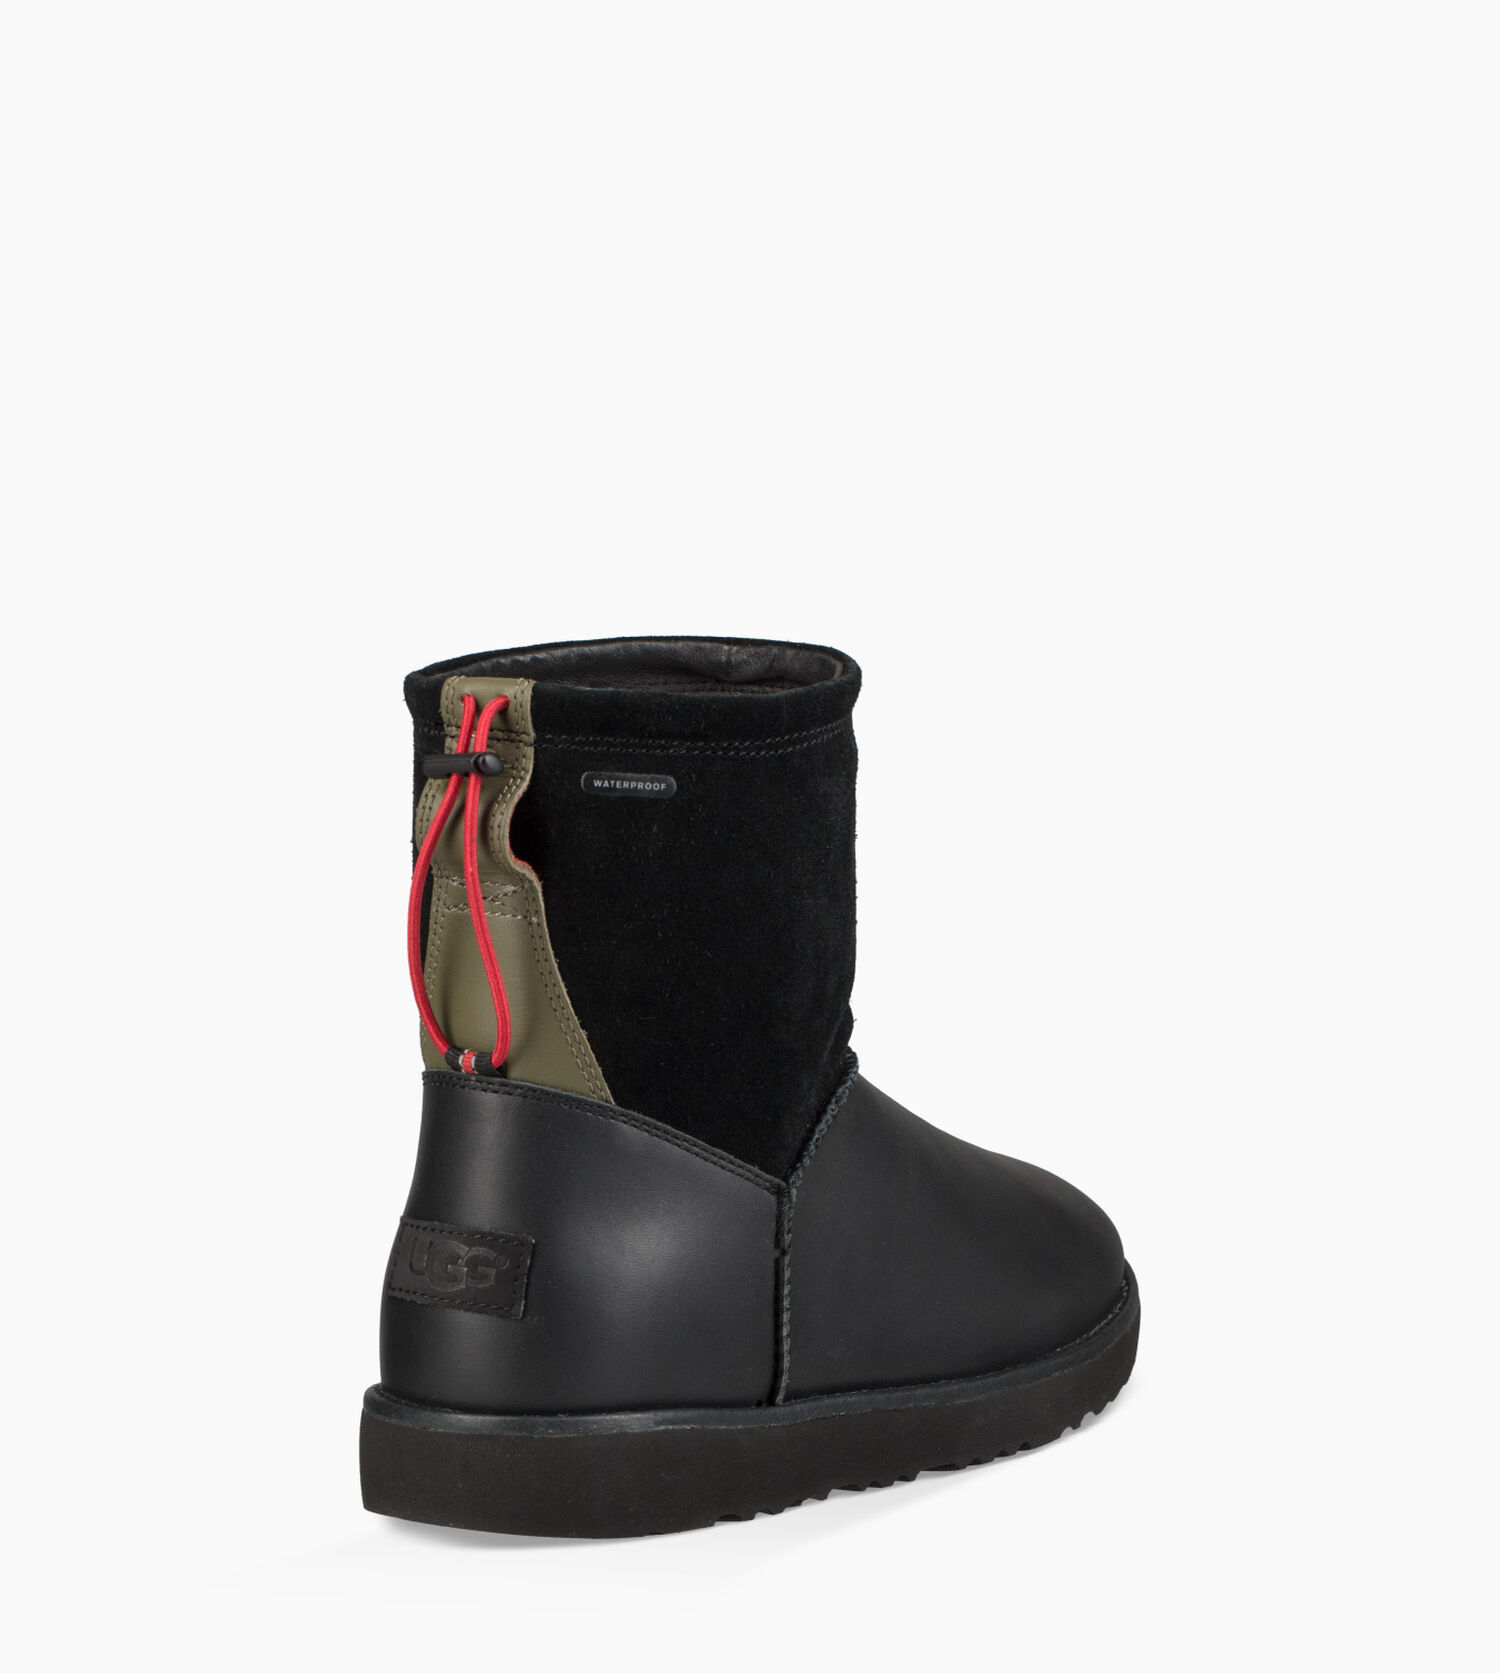 33b266f78 Men's Classic Toggle Waterproof Boot   UGG® Official